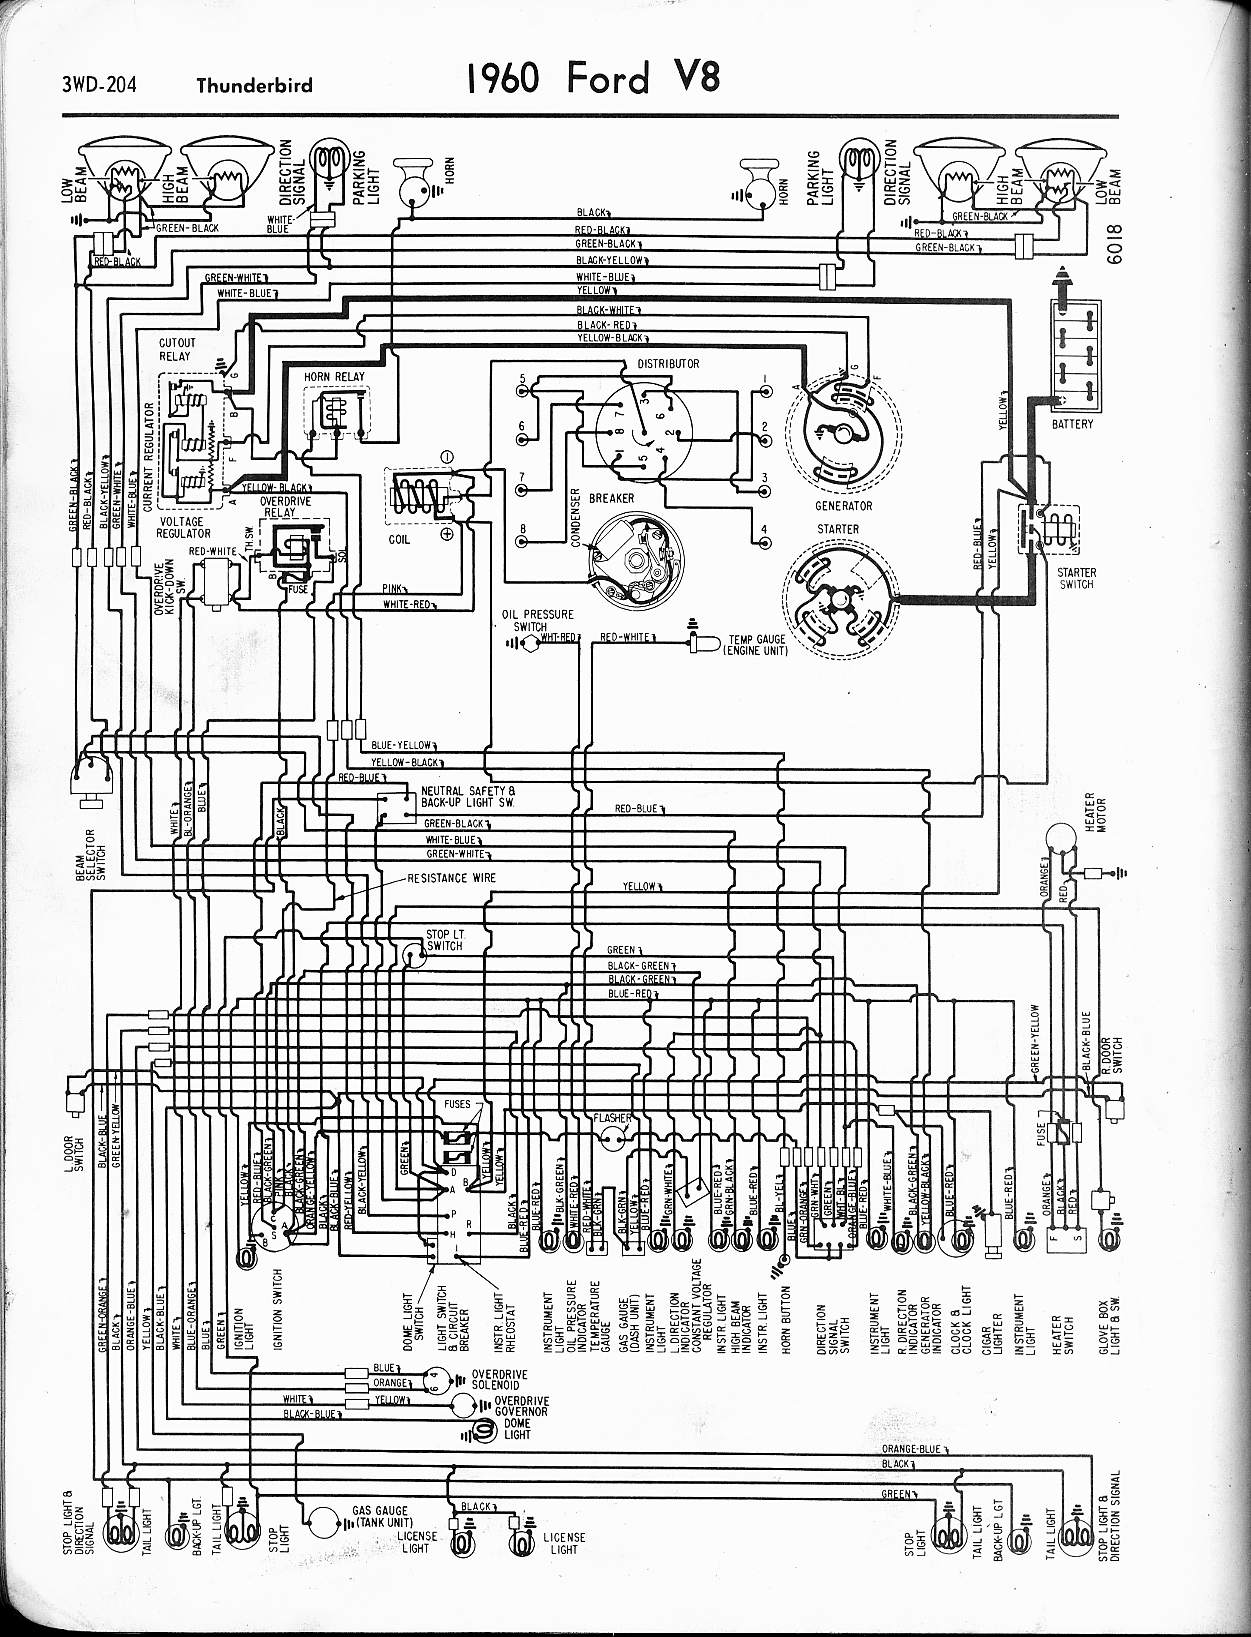 1956 mercury wiring diagram wiring diagrams schematics rh myomedia co 1955  Mercury Monterey 1955 Mercury Monterey